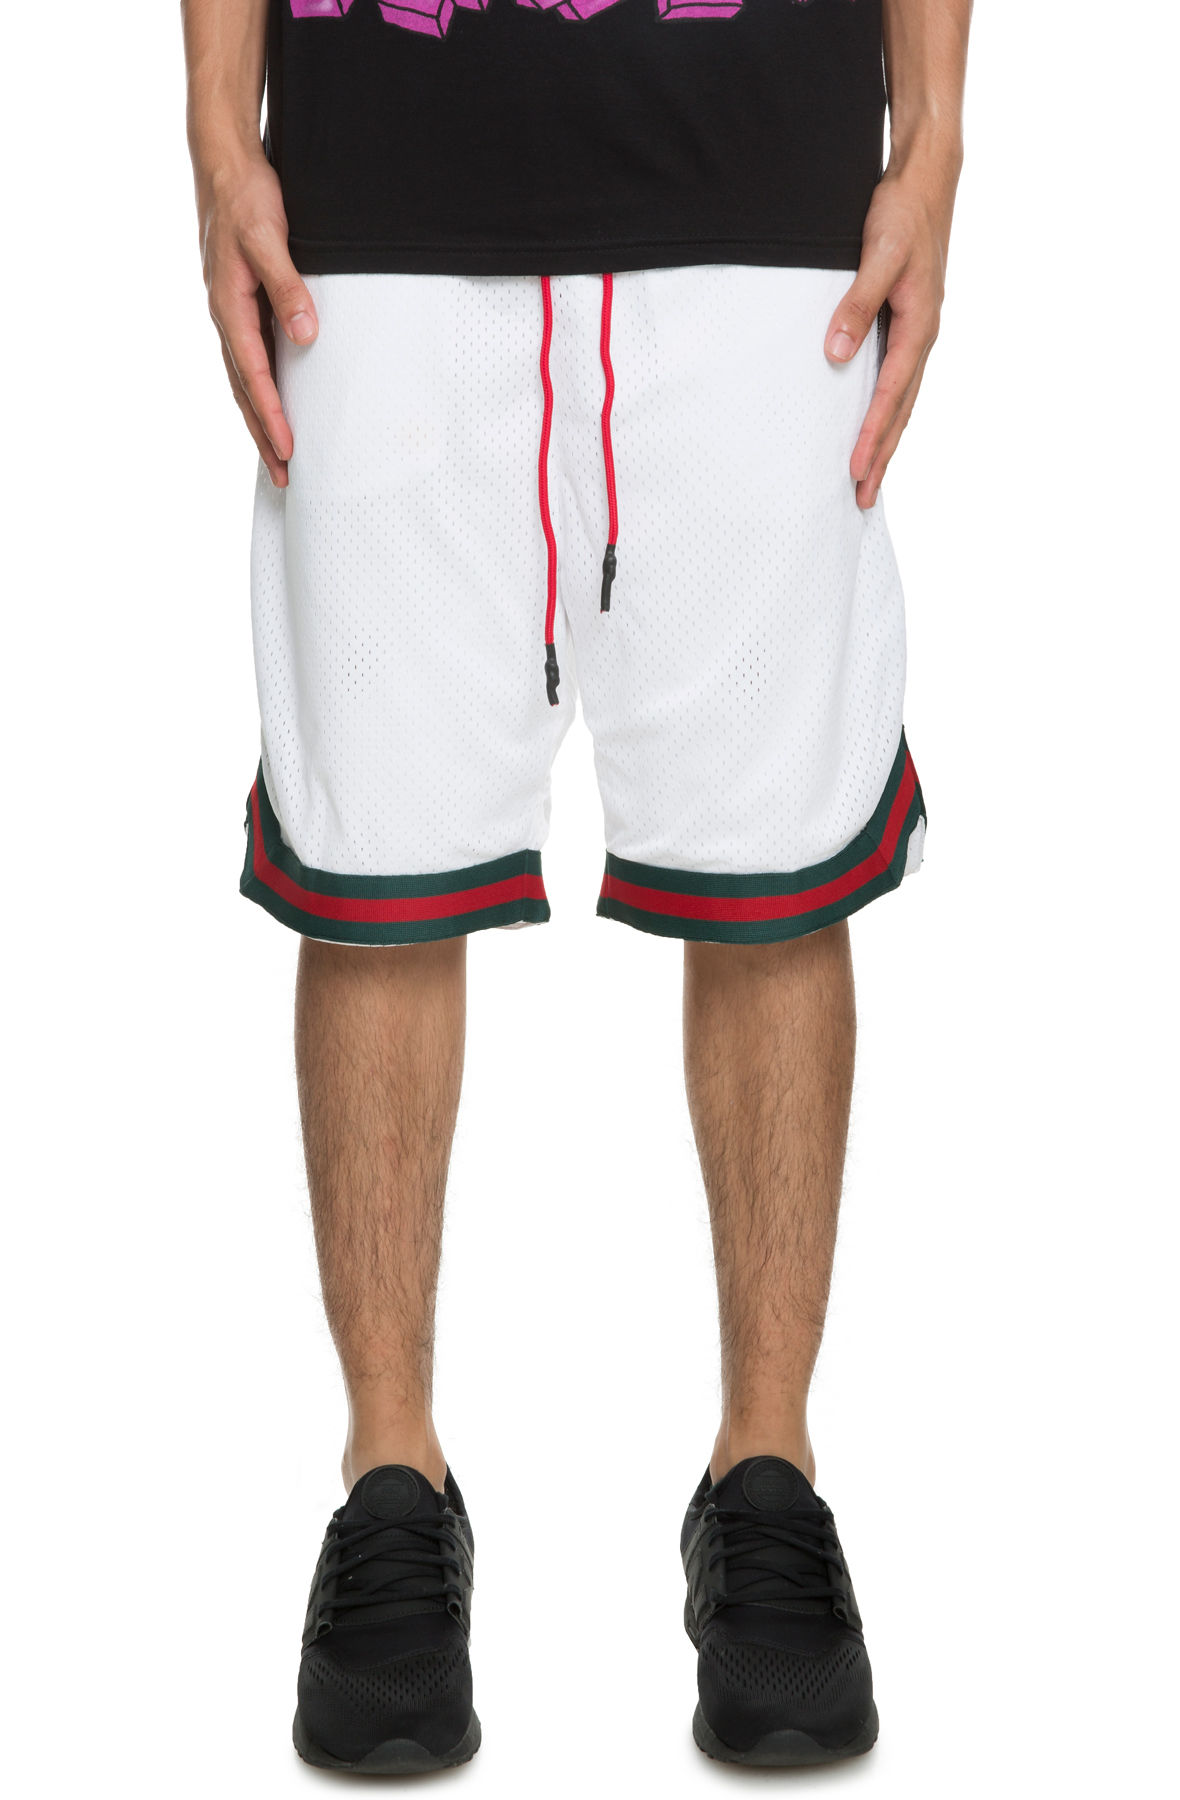 Image of The Geechi Trim Basketball shorts in White Italia Luxe